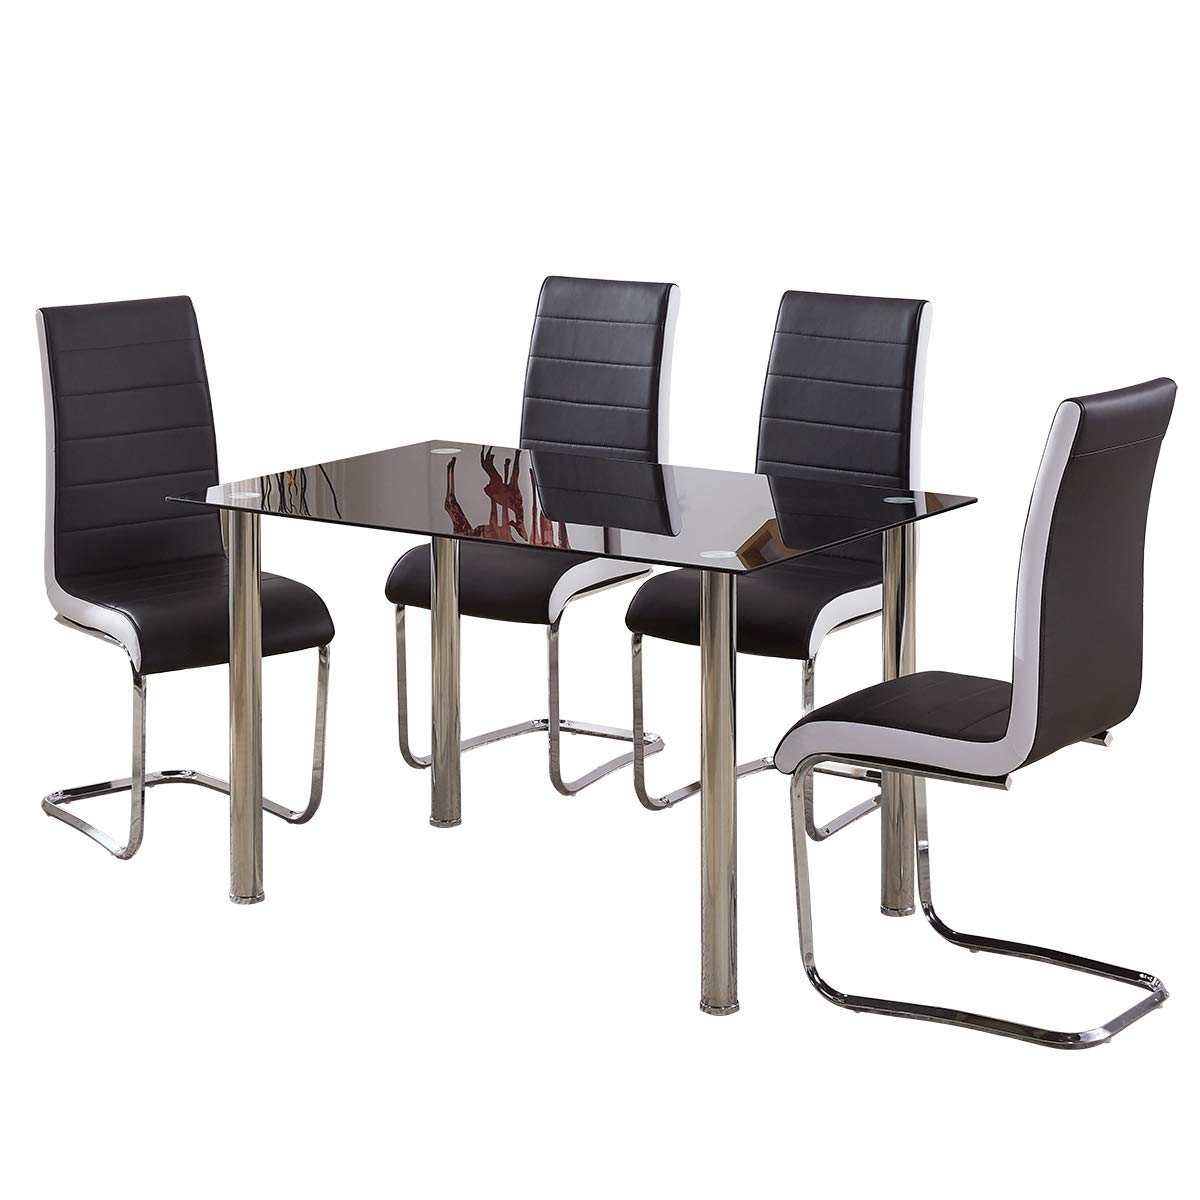 GIZZA BLACK TEMPERED GLASS DINING TABLE AND 4 BLACK/WHITE/GREY CHAIRS SET QUALITY FAUX LEATHER SEATER CHROME METAL FRAME HOME/OFFICE/RESTAURANT FURNITURE (4 Black Chairs + Table)